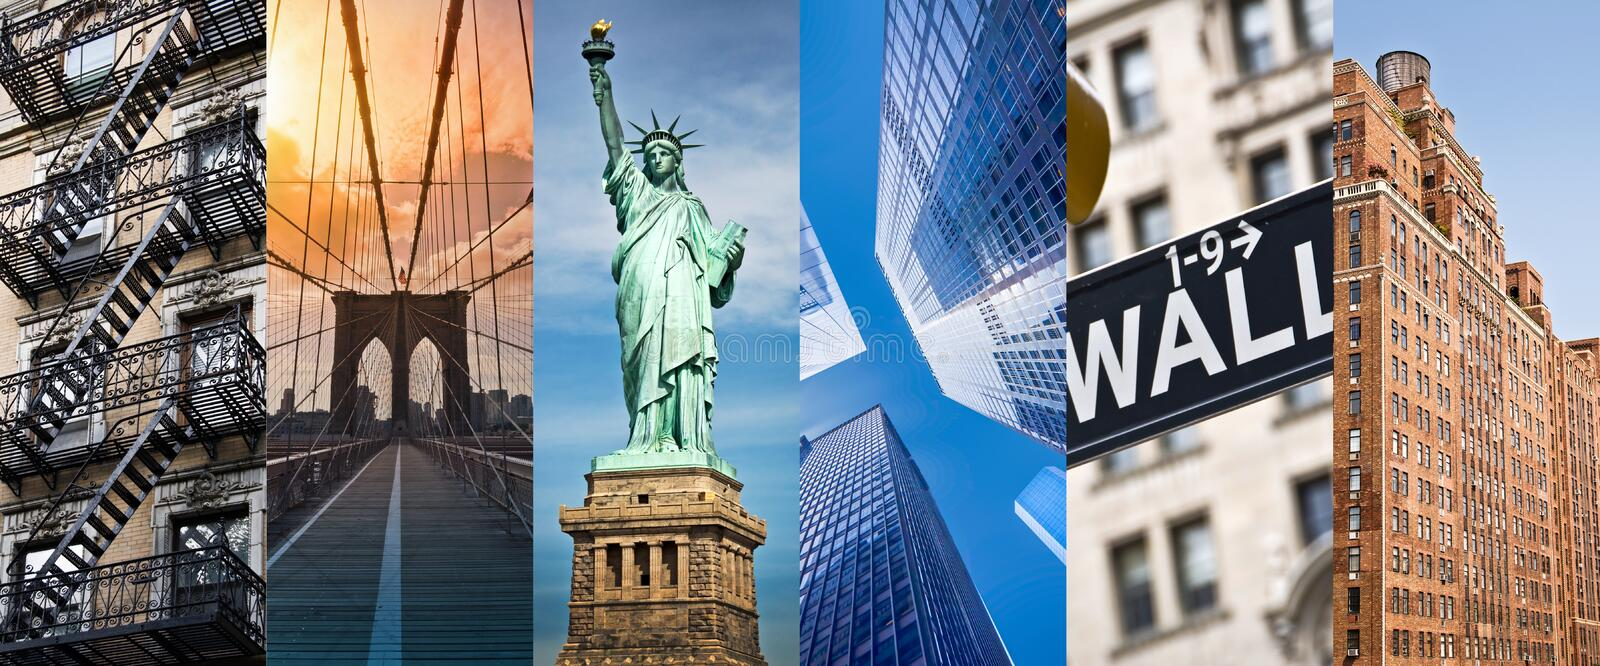 New York, panoramic photo collage, New York landmarks travel and tourism concept stock images